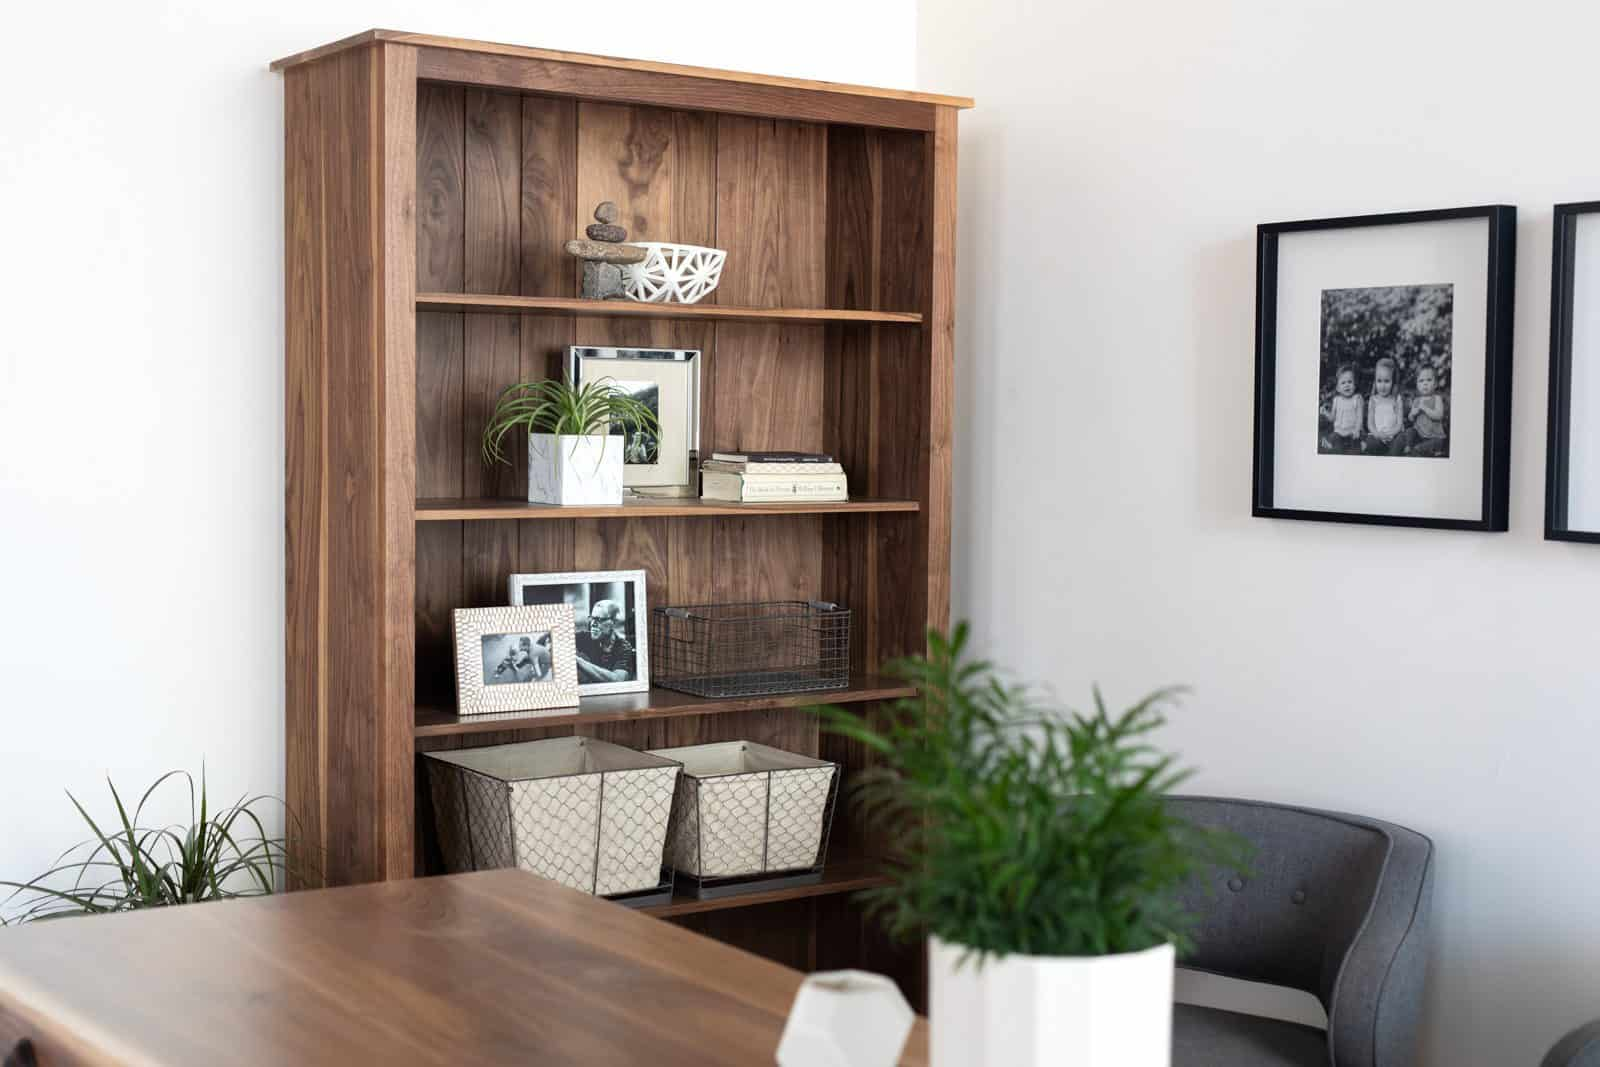 The Carolina Bookcase for a home library